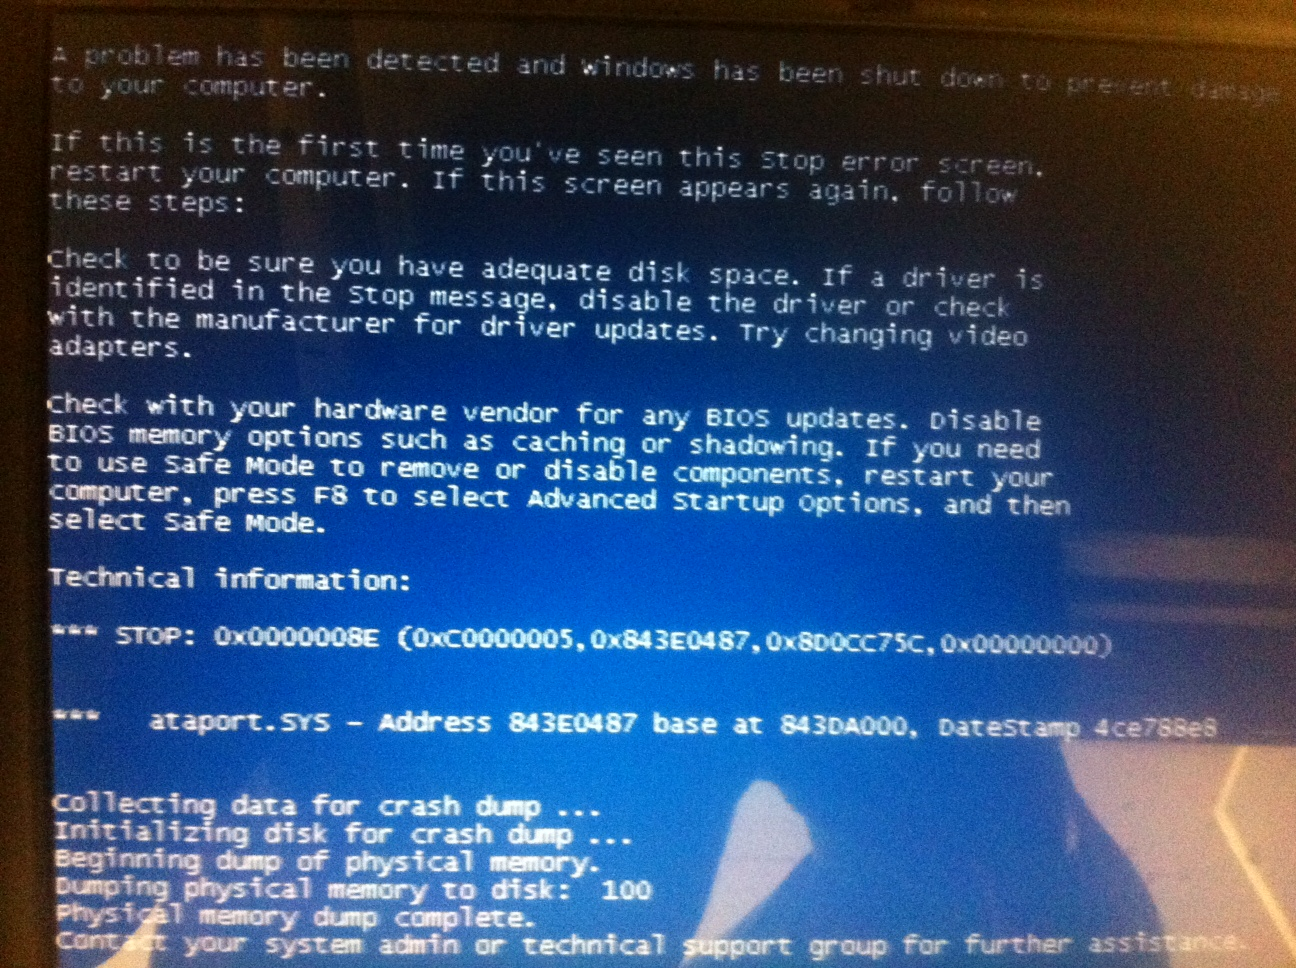 Windows 7 Blue Screen 0x0000008E ataport SYS